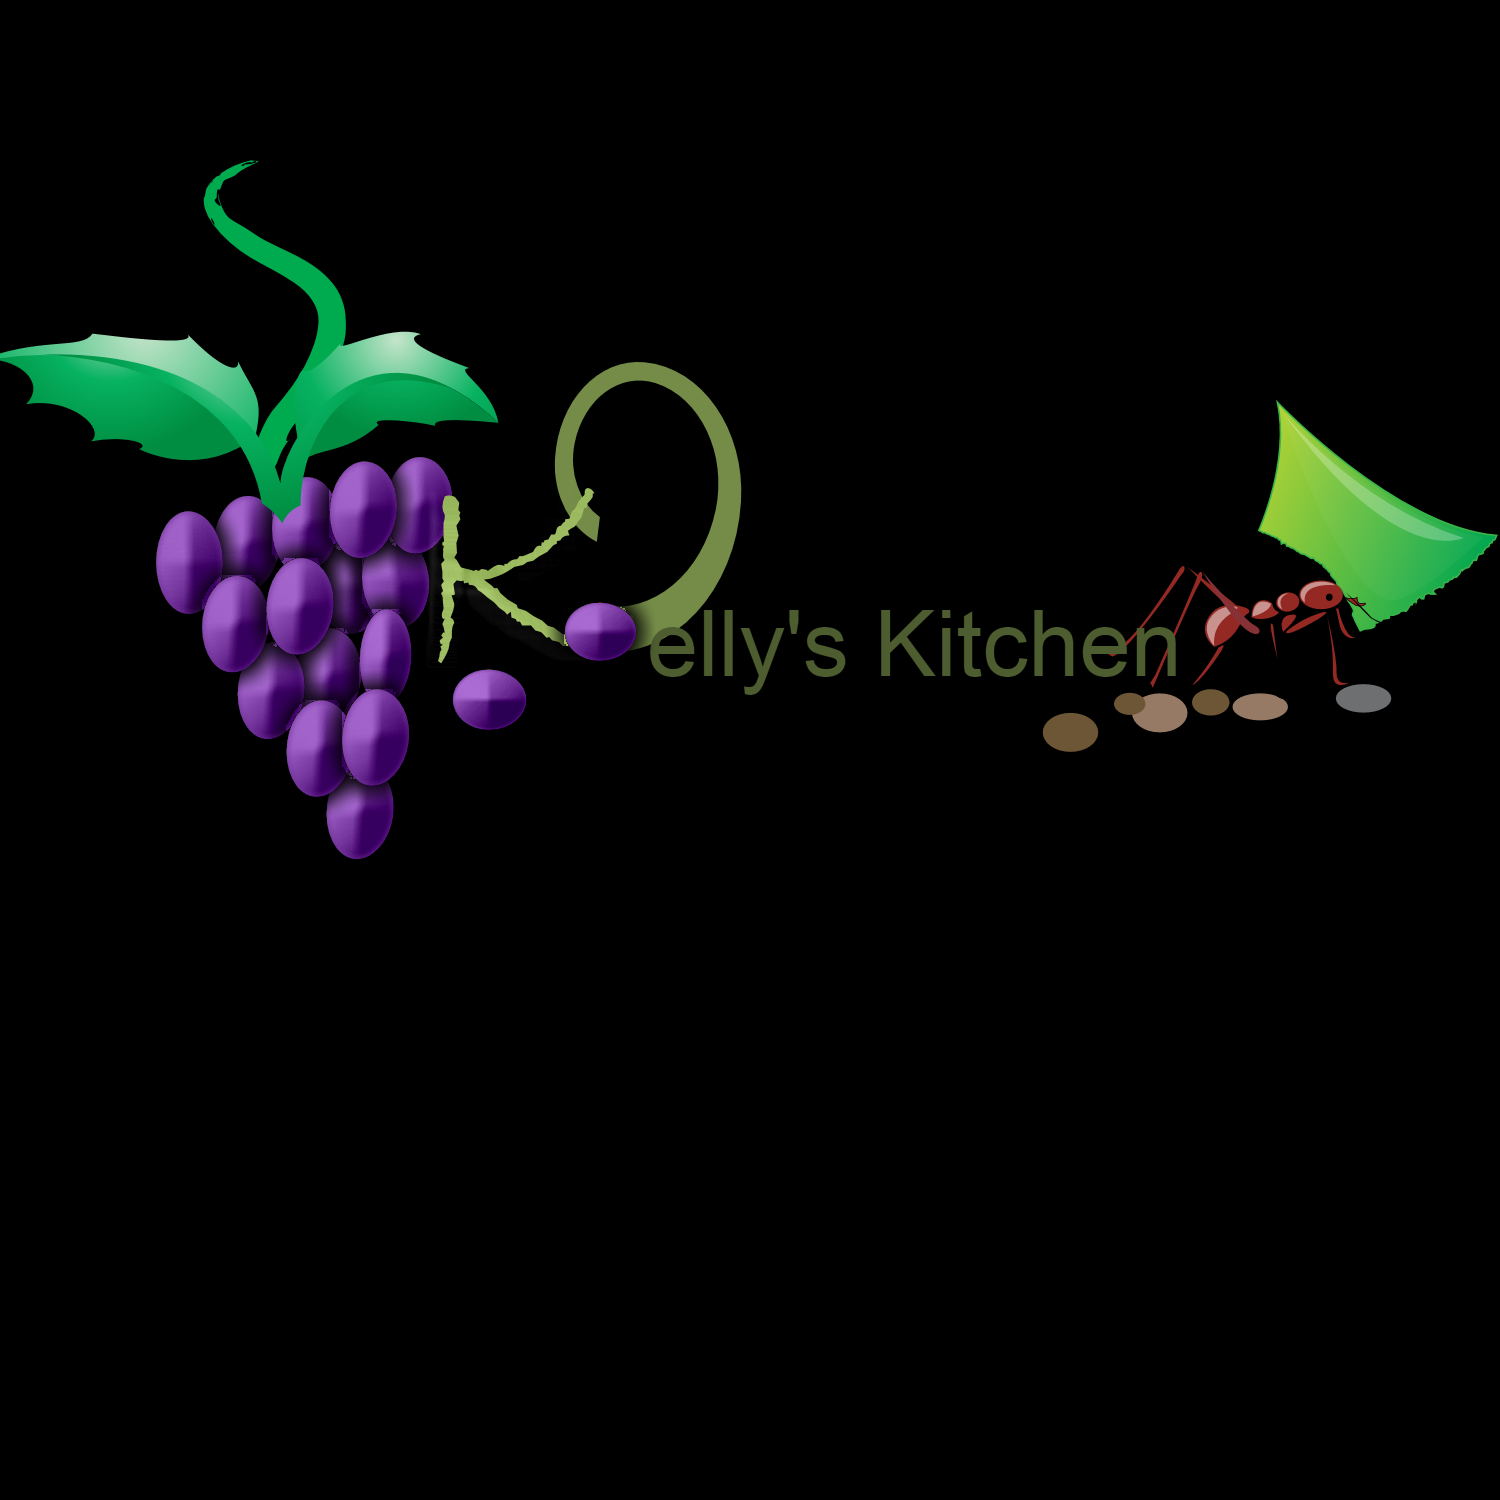 Logo Design by Melanie Fitzpatrick - Entry No. 34 in the Logo Design Contest Unique Logo Design Wanted for Kelly's Kitsch'n.